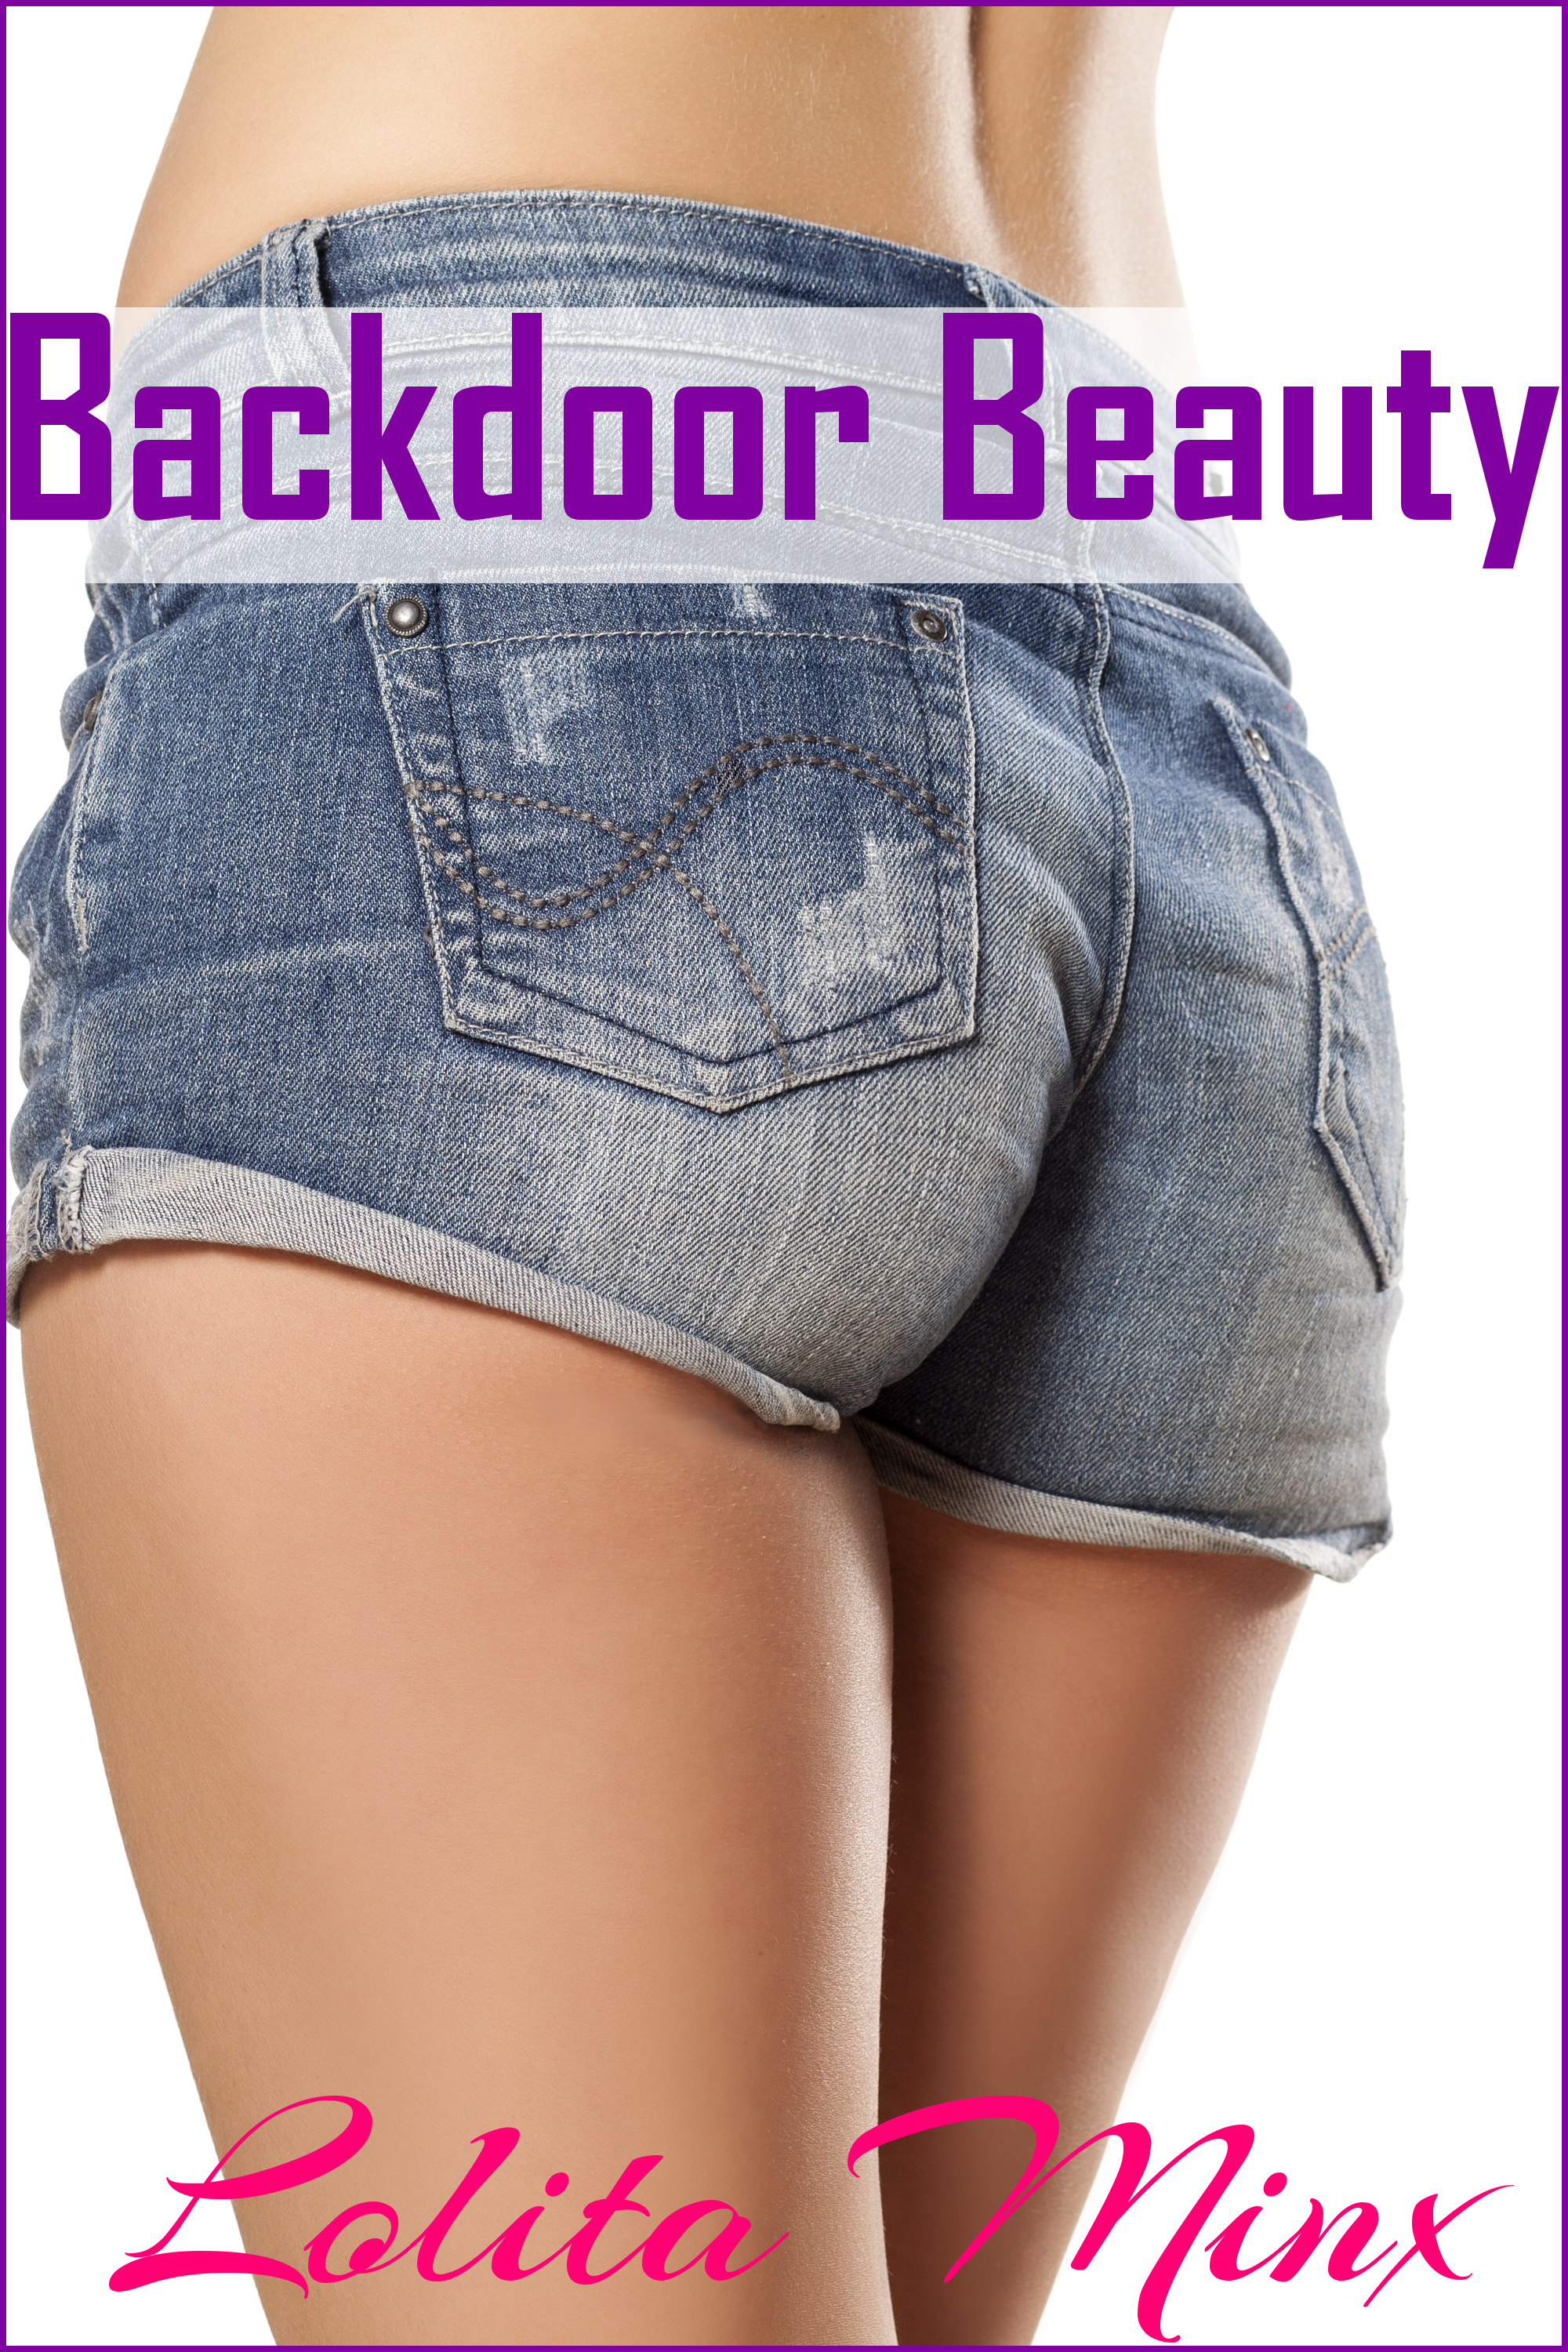 Backdoor Beauty